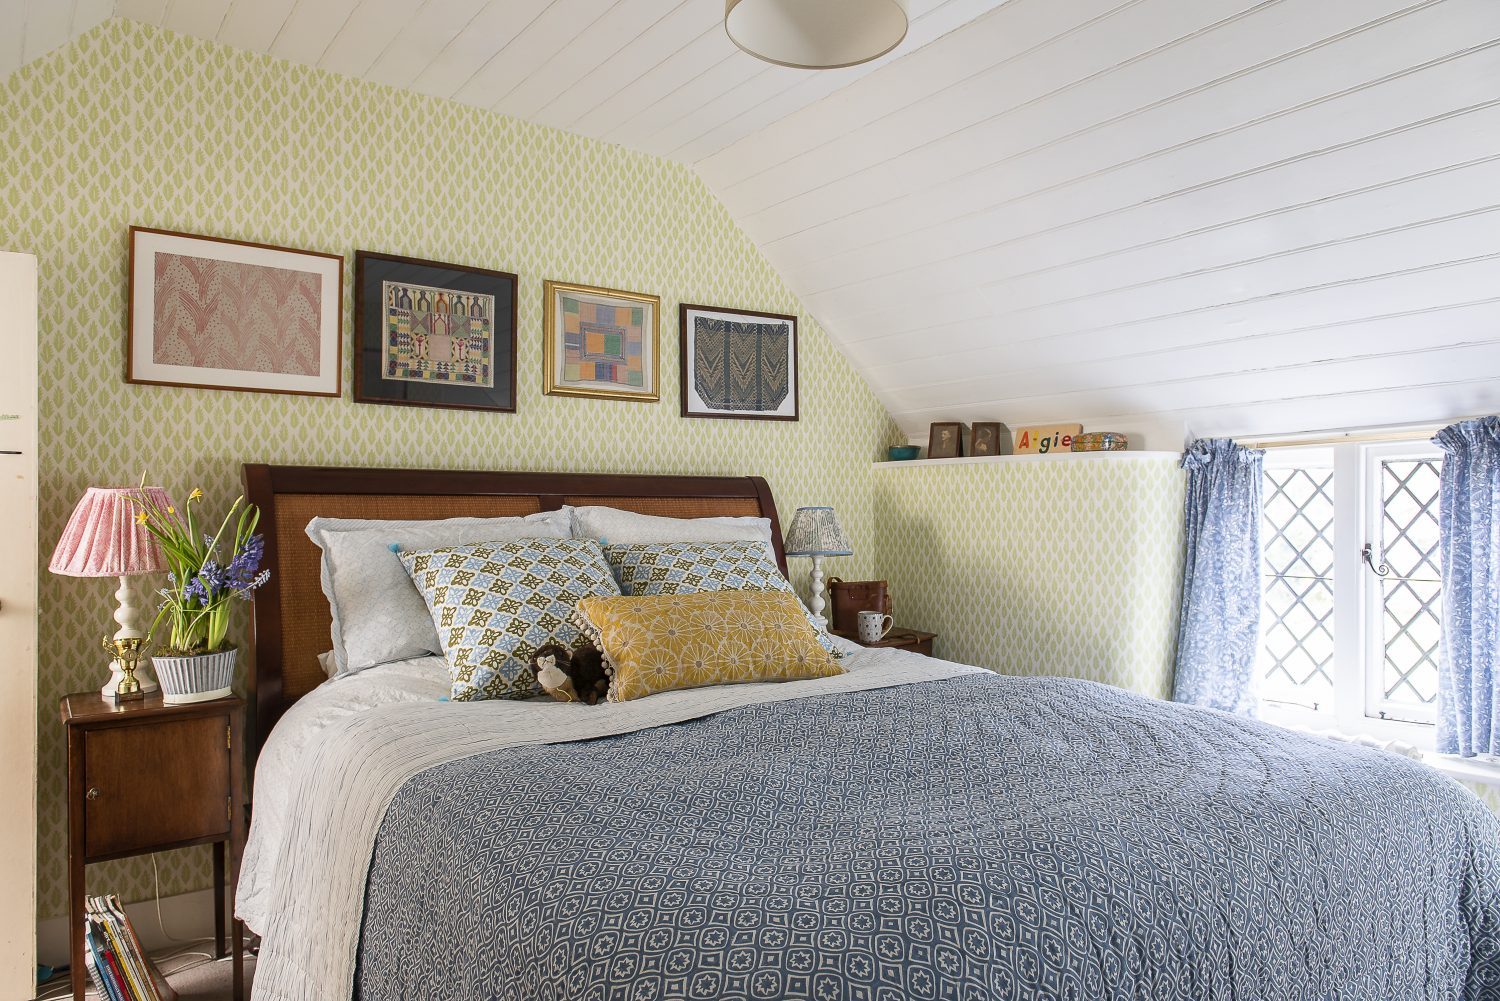 Over the bed in the guest bedroom on the far left and far right are two block-printed fabric samples by Barron and Larcher, early 20th century pioneers in fabric design who have been a big influence on Molly's work